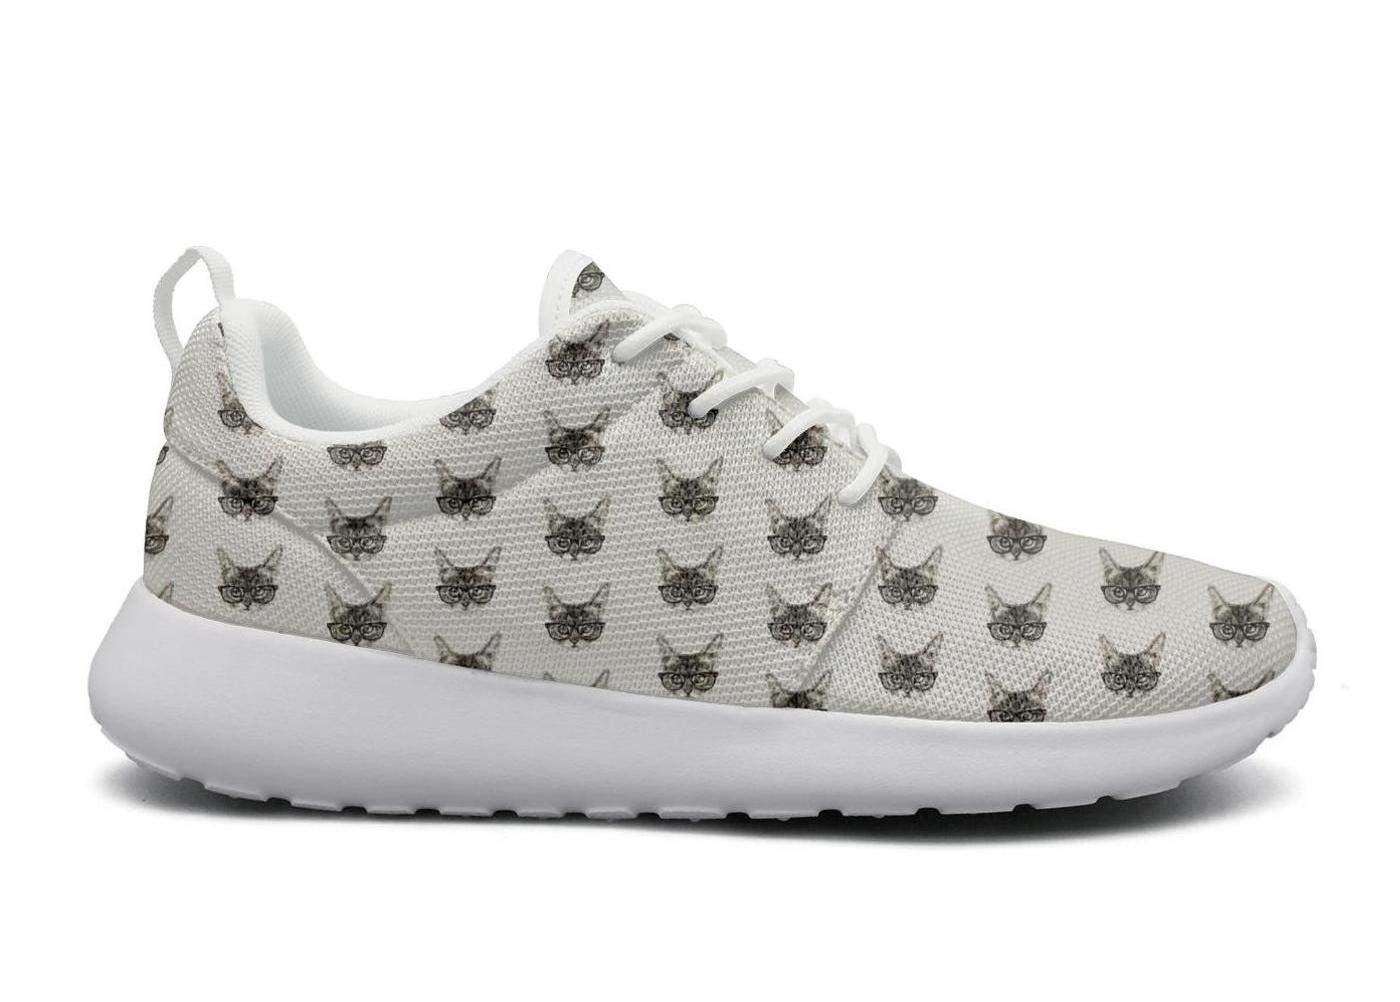 Cute Glasses cat Print White Plimsolls for Men News Highly Breathable Male Running Shoes